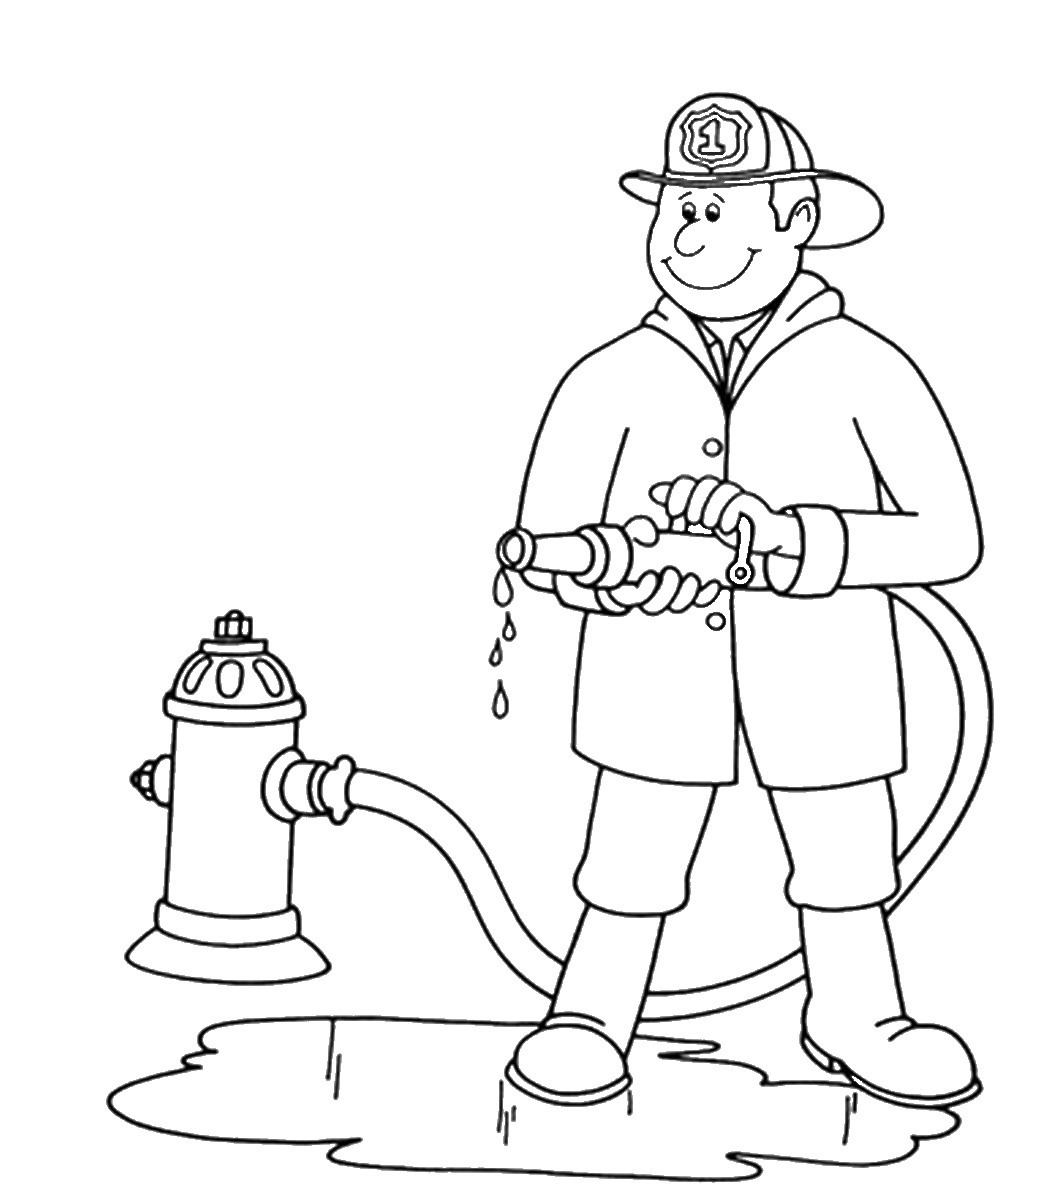 fireman and policeman coloring pages - photo#16